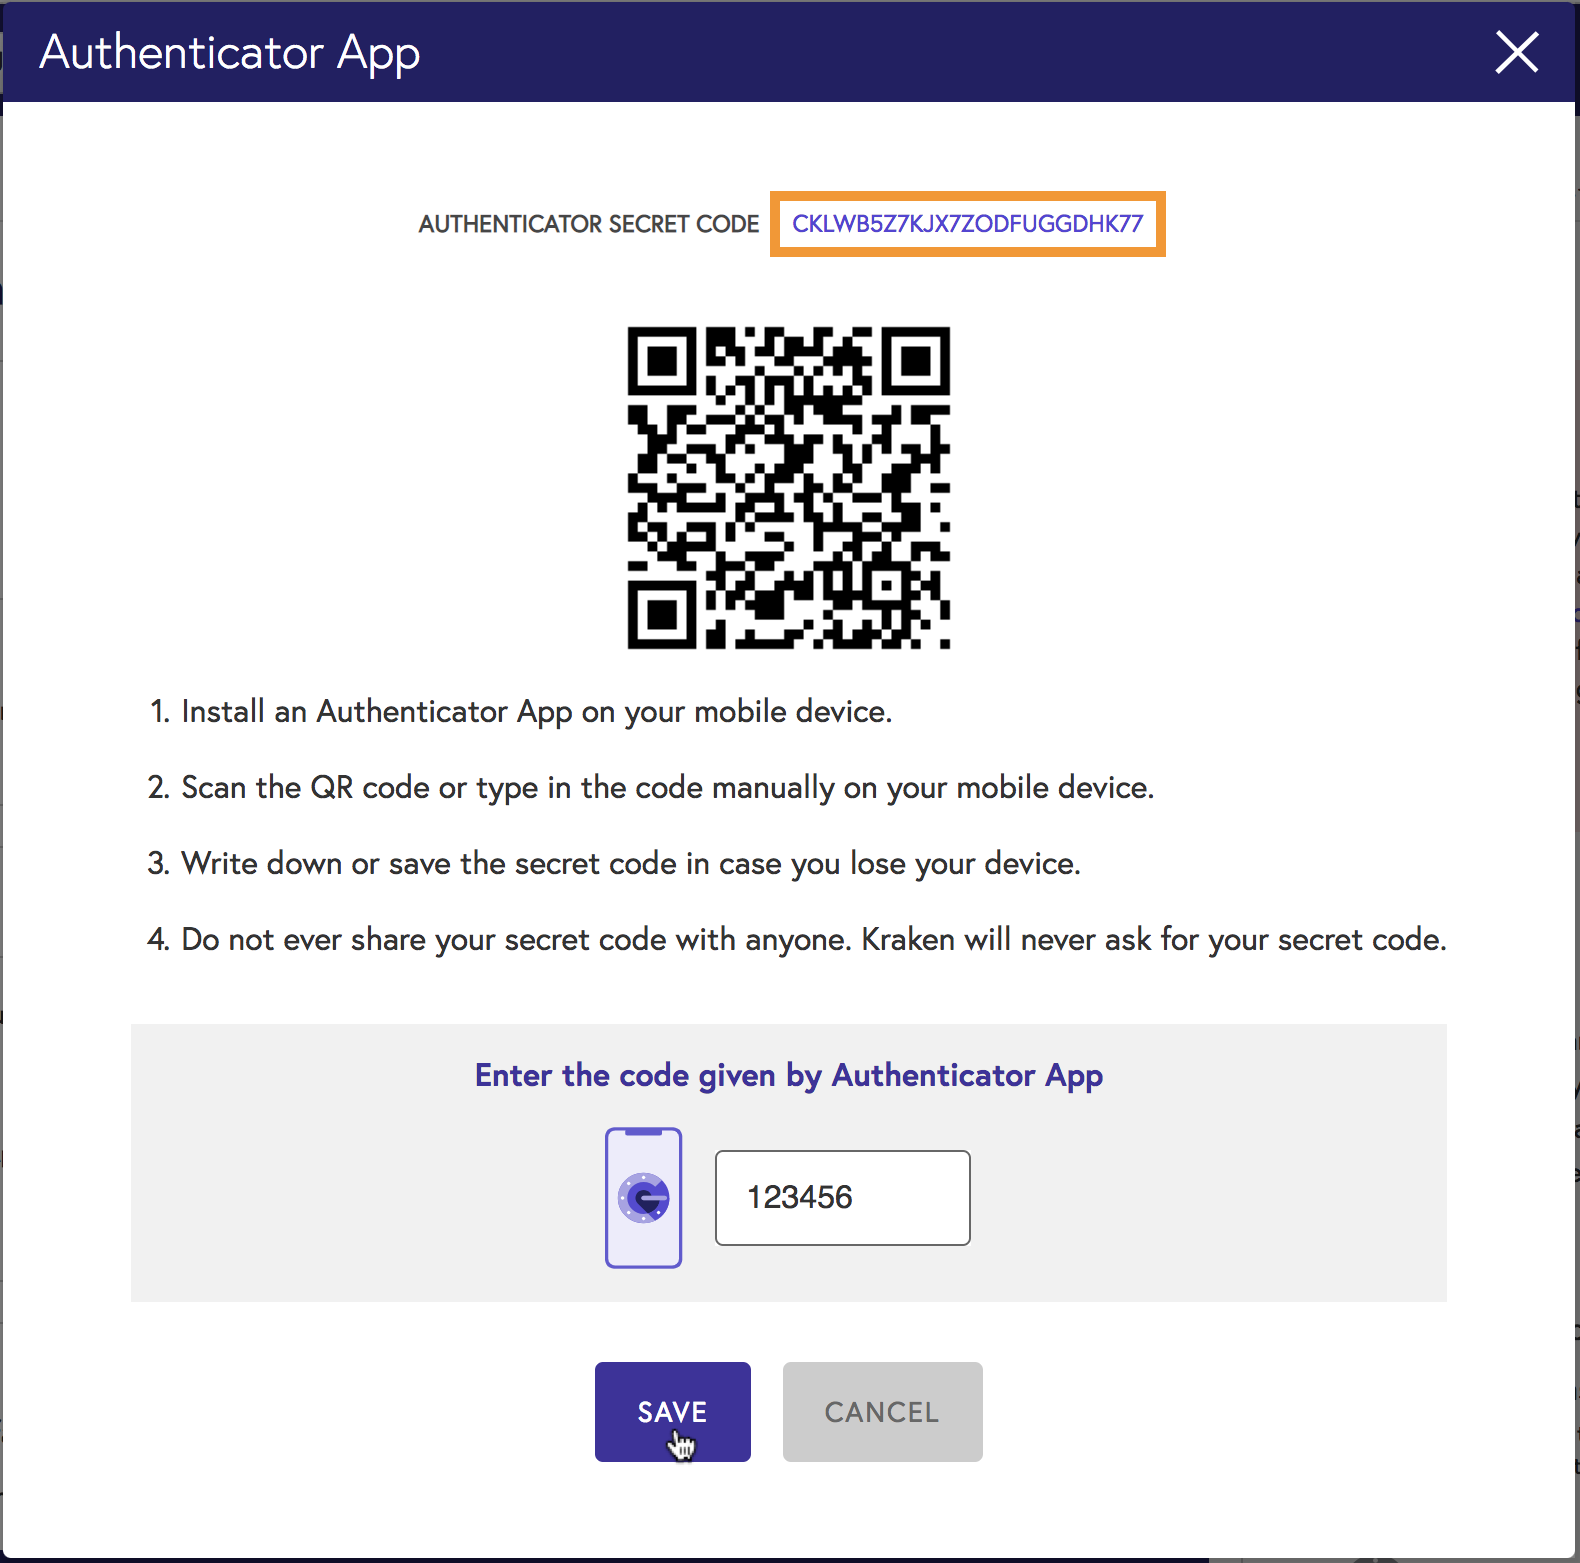 360001486466_secret-code-authenticator-2FA_1.png